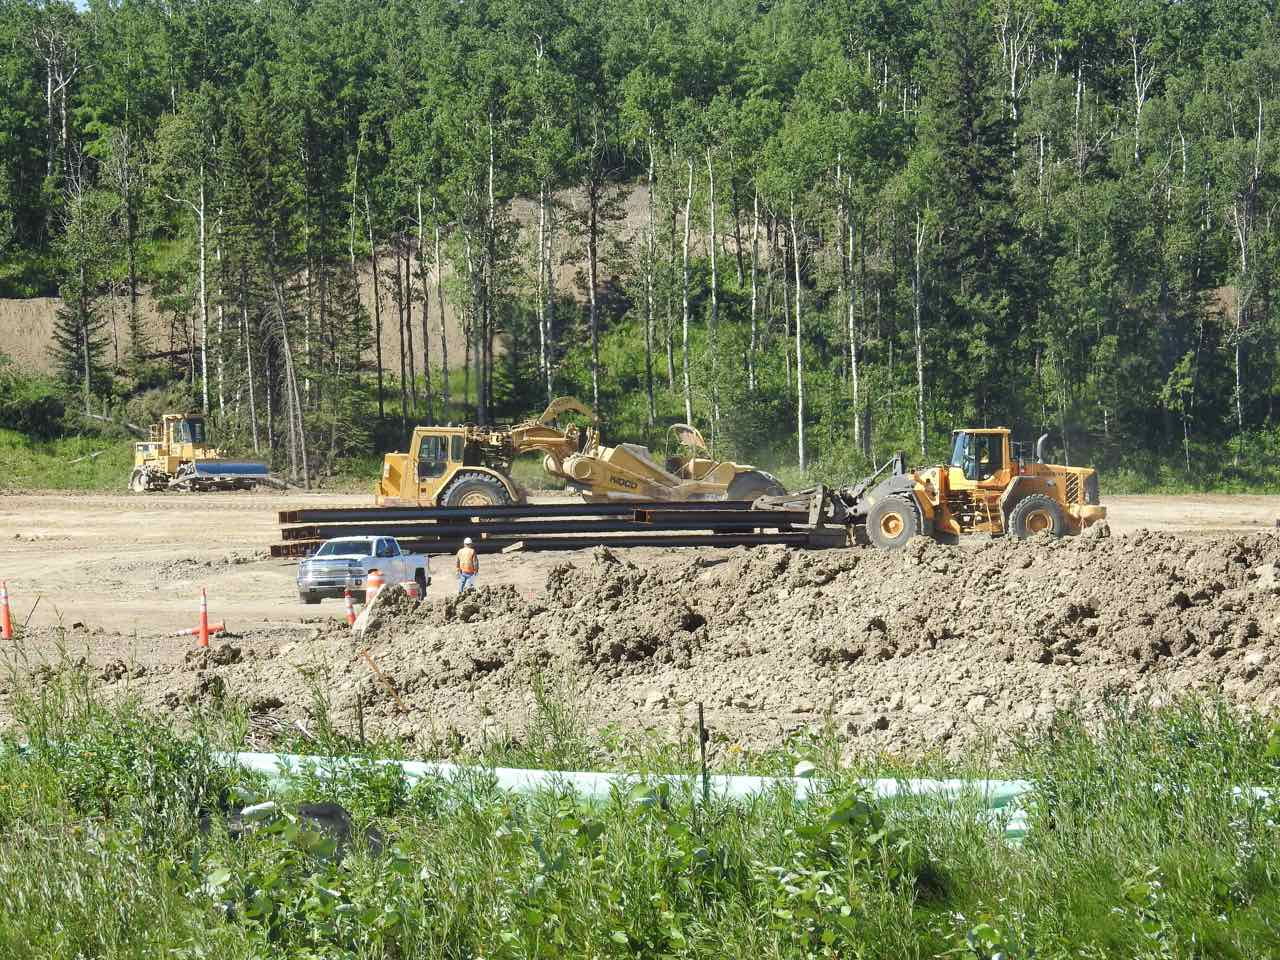 12_SWCRR-TUC-Weaselhead___Piles_For_Man-made_River_Channel_in_Elbow_River_Valley-July_24_2017.jpg